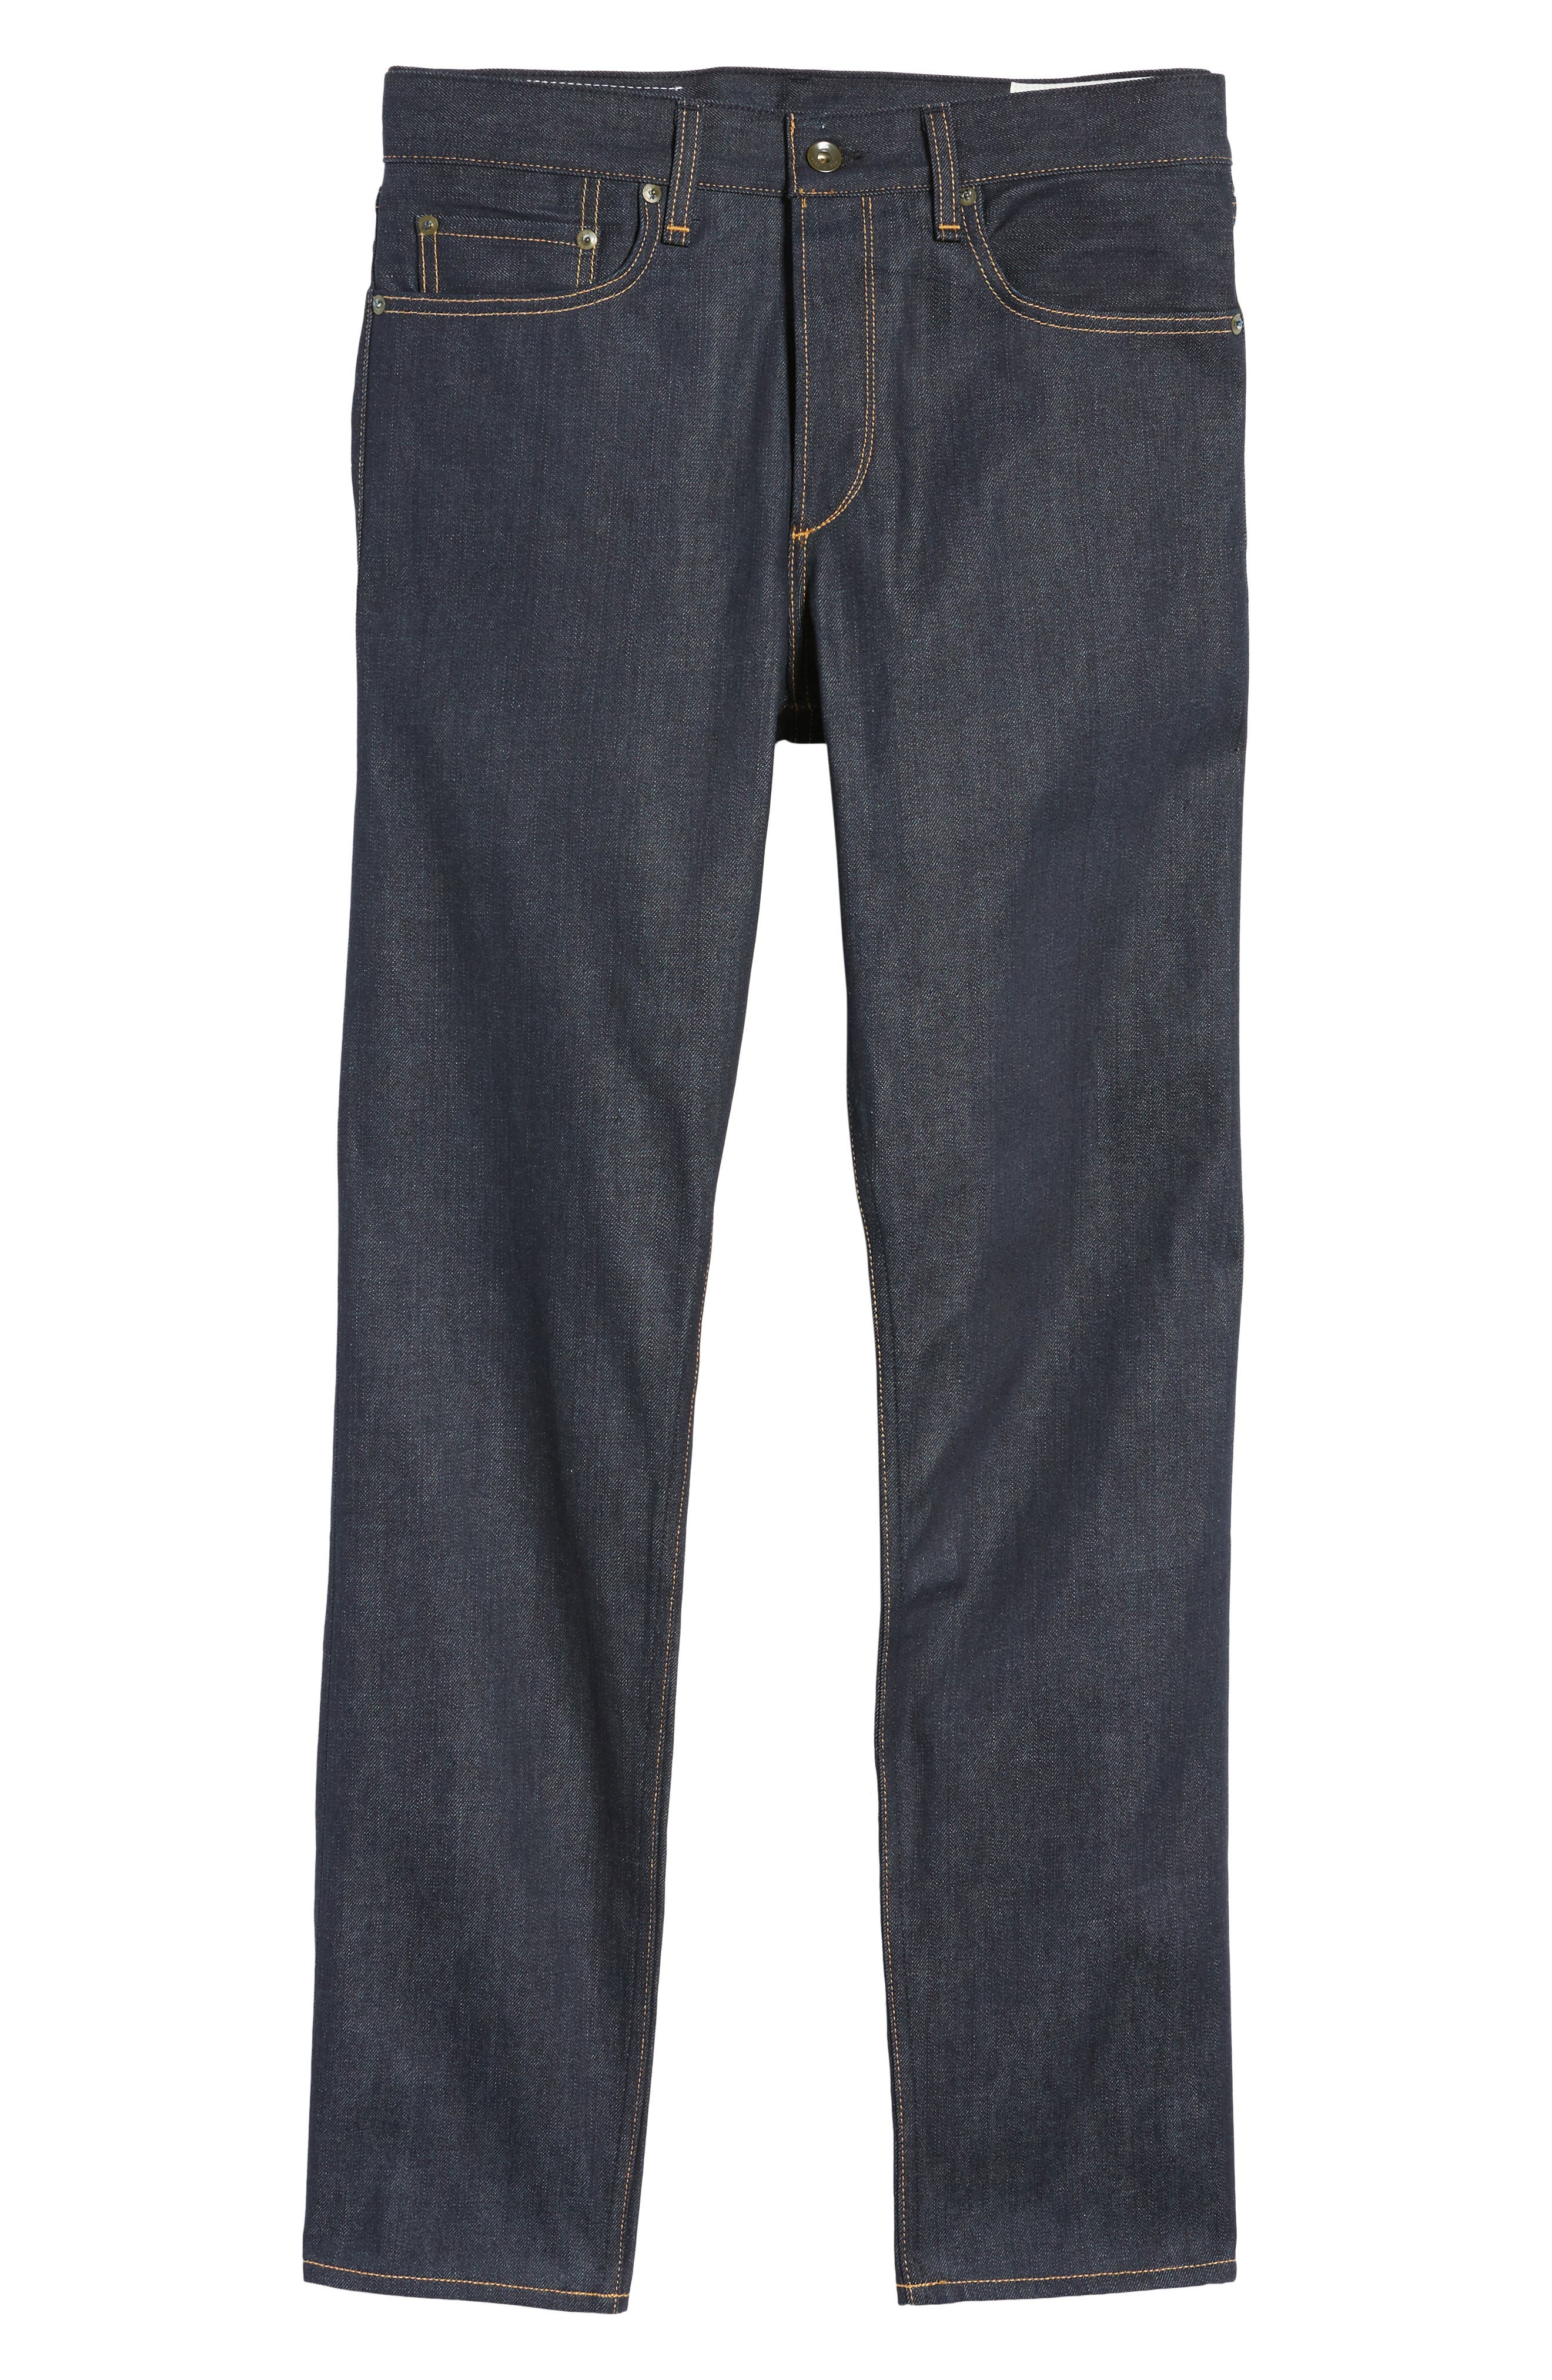 RAG & BONE Standard Issue Fit 2 Slim Fit Raw Selvedge Jeans, Main, color, 419